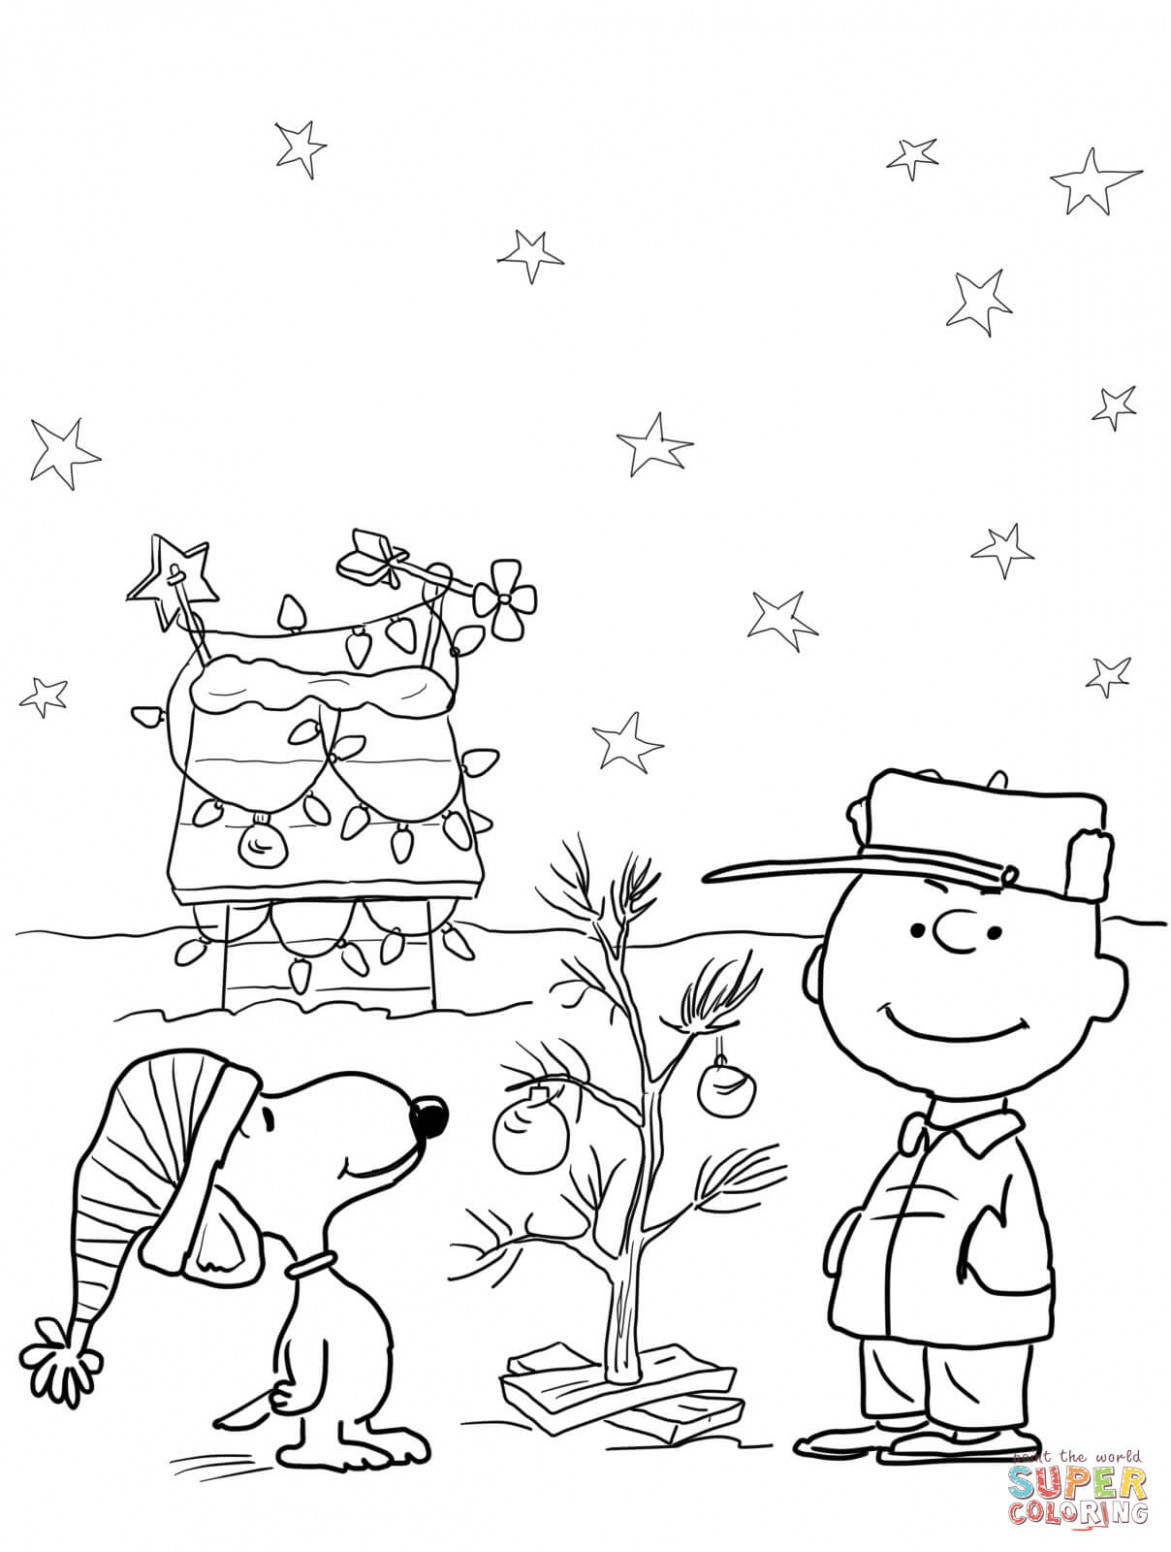 Charlie Brown Christmas coloring page   Free Printable Coloring Pages – Christmas Coloring Pages Peanuts